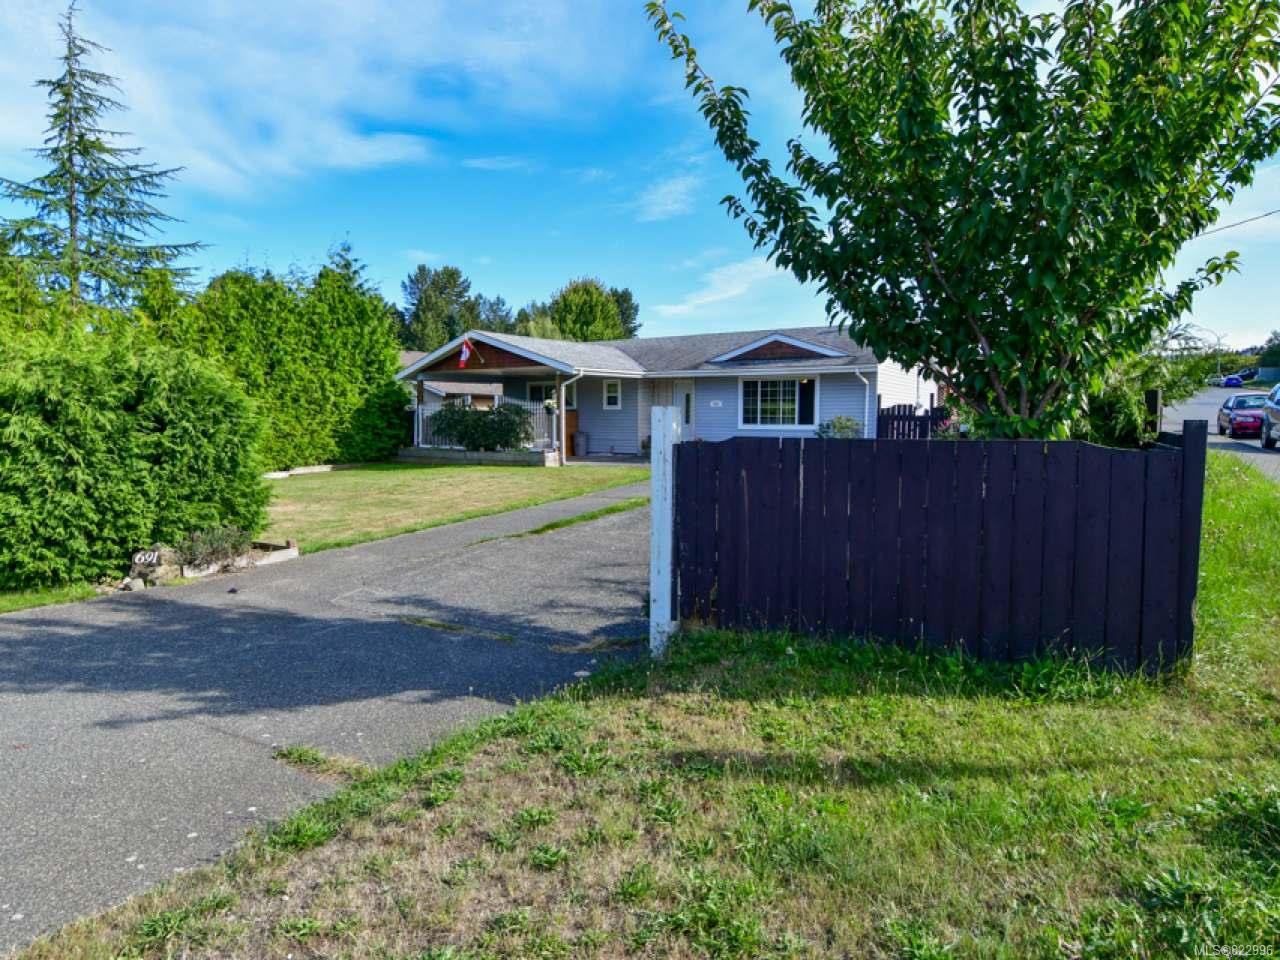 Photo 44: Photos: 691 Holm Rd in CAMPBELL RIVER: CR Willow Point House for sale (Campbell River)  : MLS®# 822996